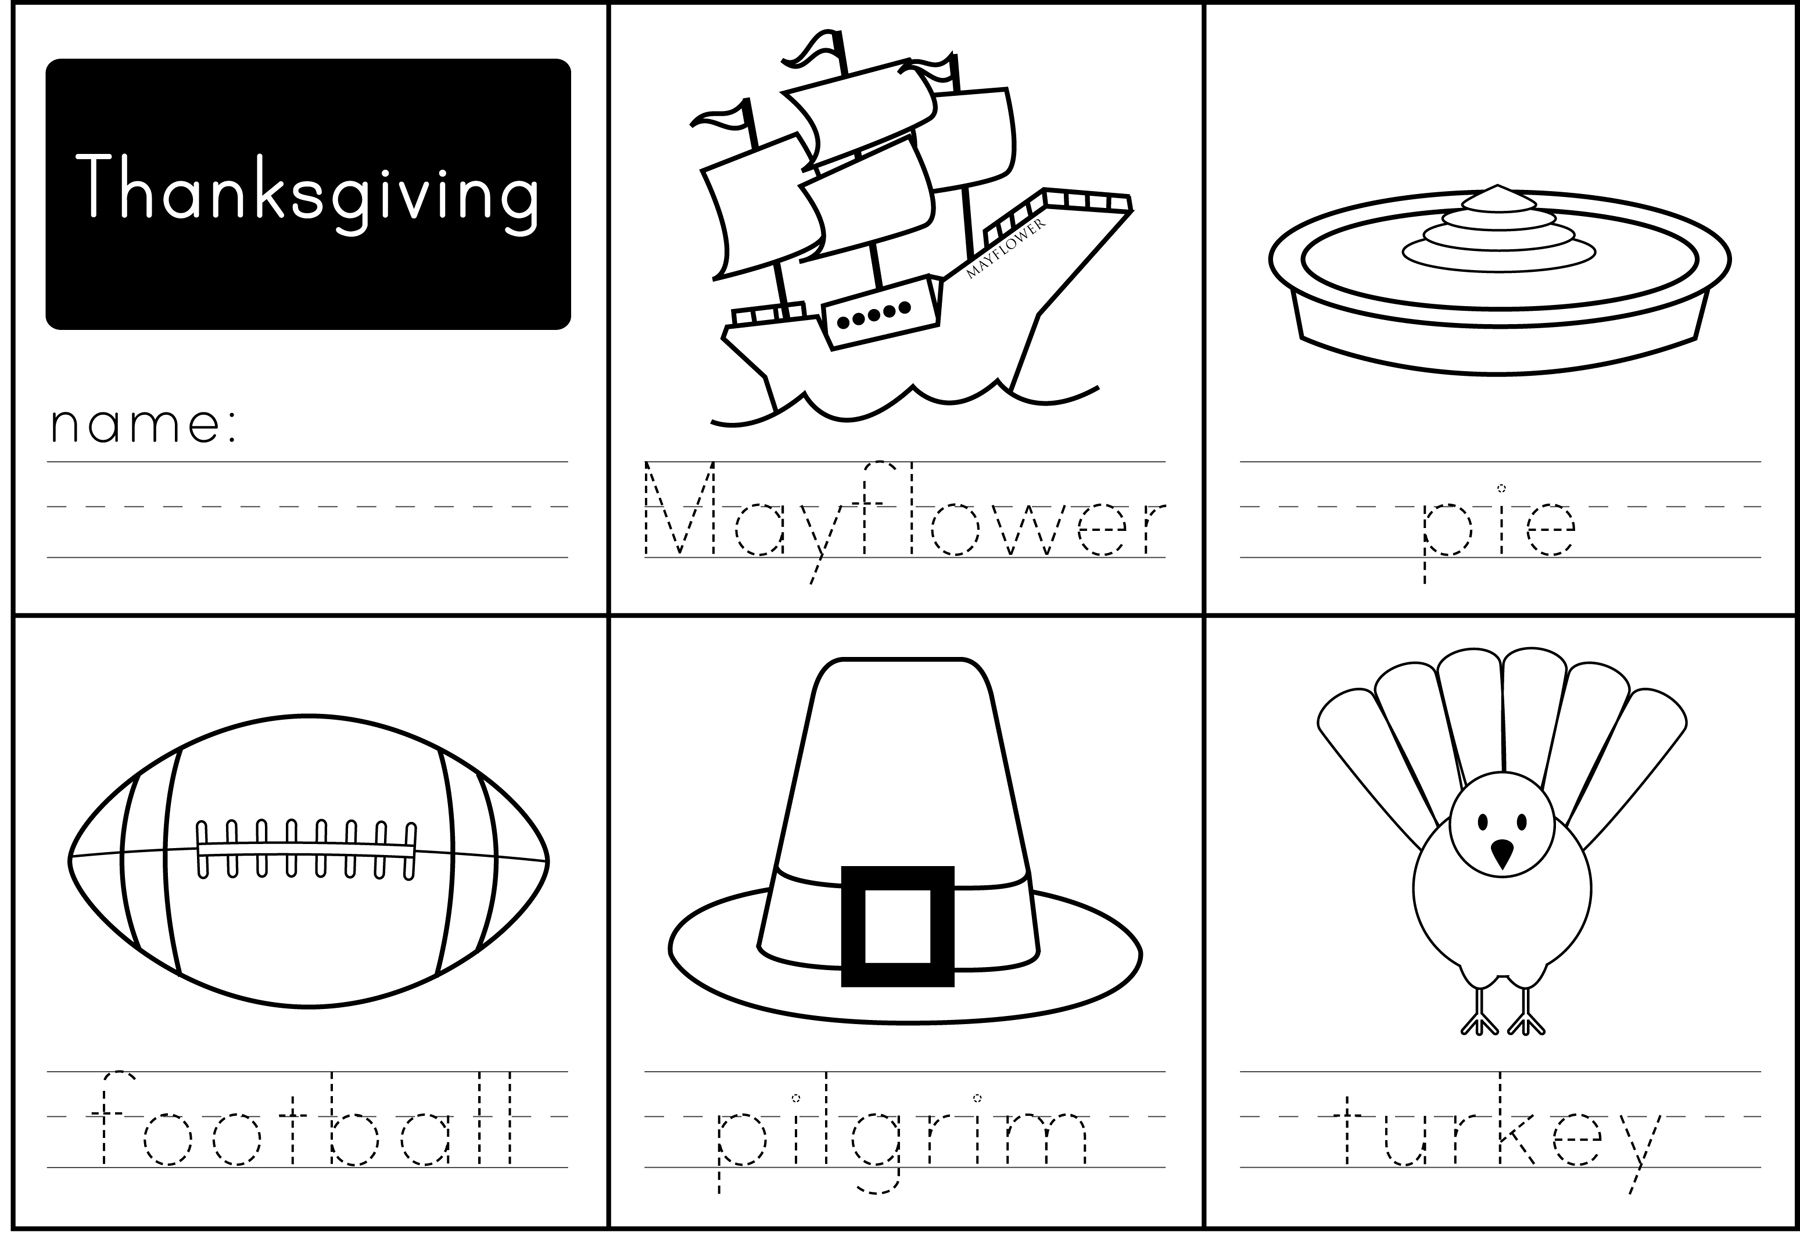 Thanksgiving Words All New Worksheet For Your Little Ones To Practice Writing Simple